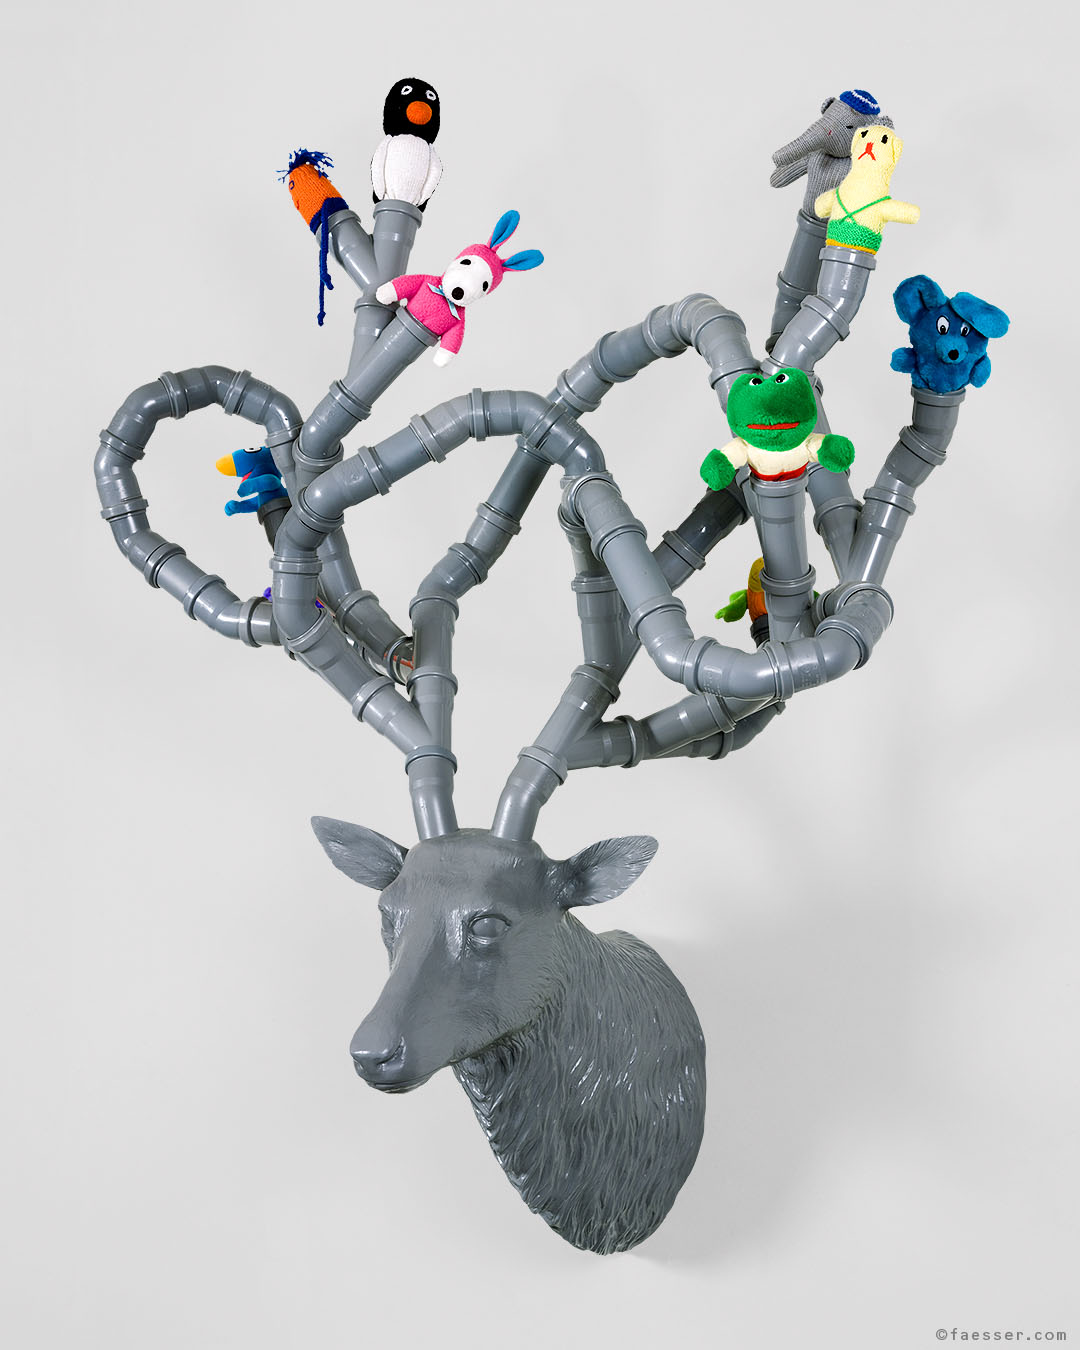 A Capella: deer trophy with outgrown antlers pipes and choral singing plush toys; work of art as figurative sculpture; artist Roland Faesser, sculptor and painter 2007